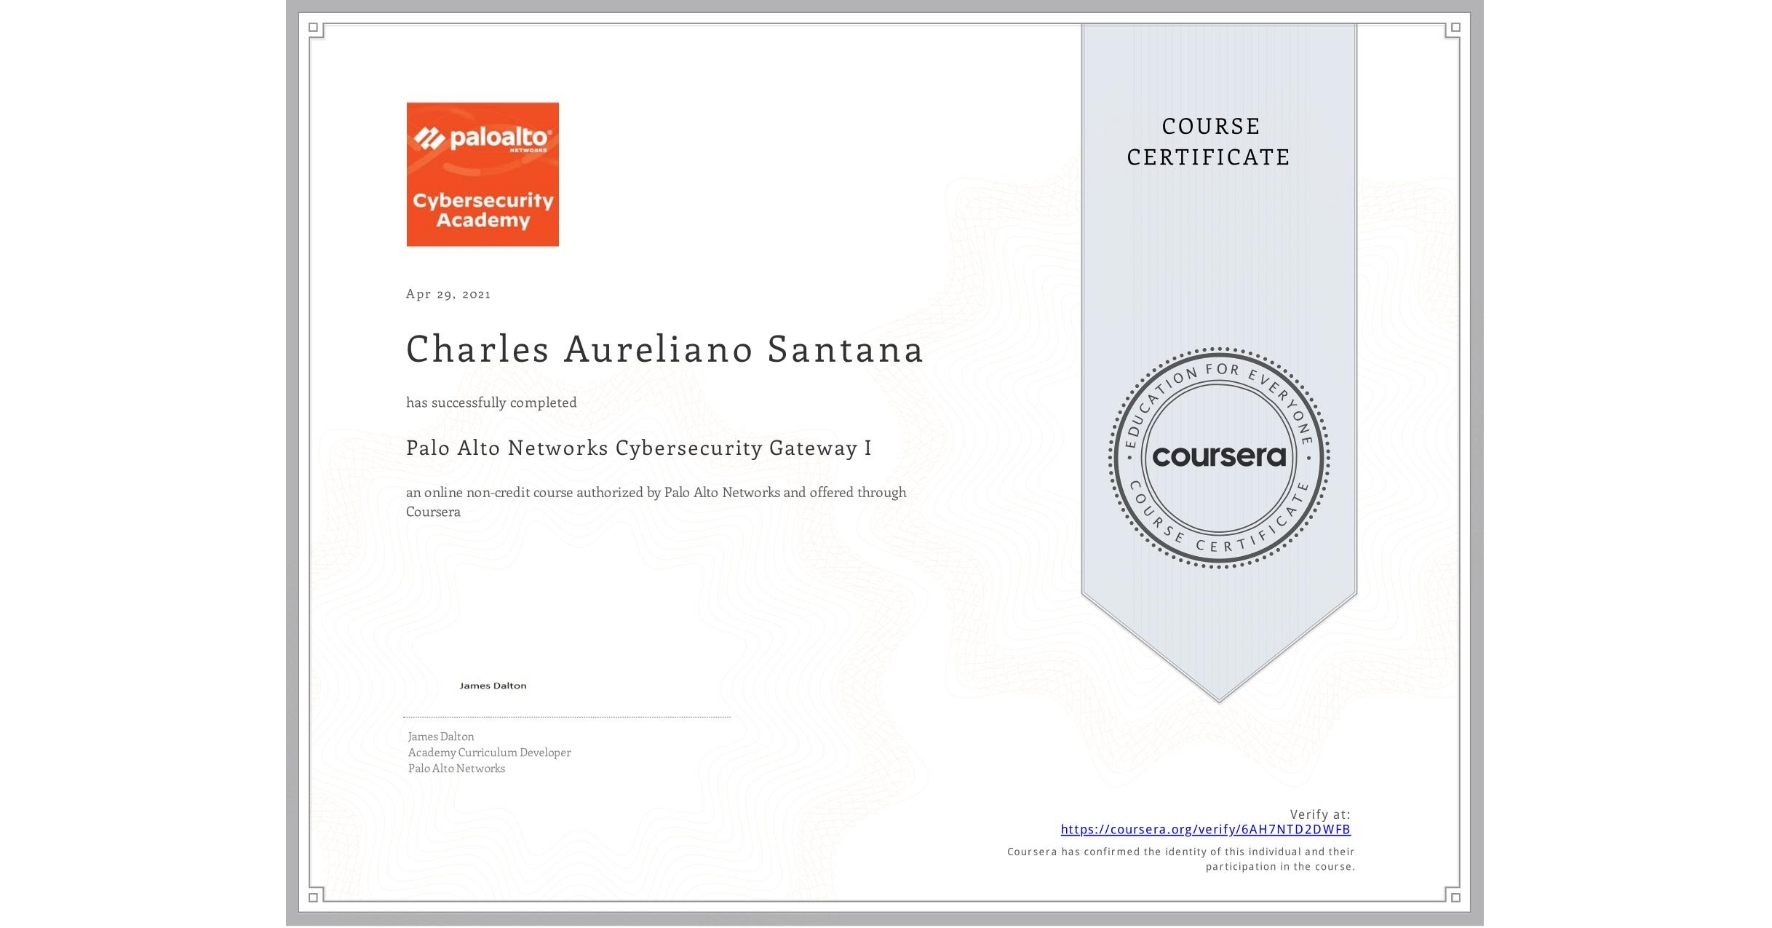 View certificate for Charles Aureliano Santana, Palo Alto Networks Cybersecurity Gateway I, an online non-credit course authorized by Palo Alto Networks and offered through Coursera